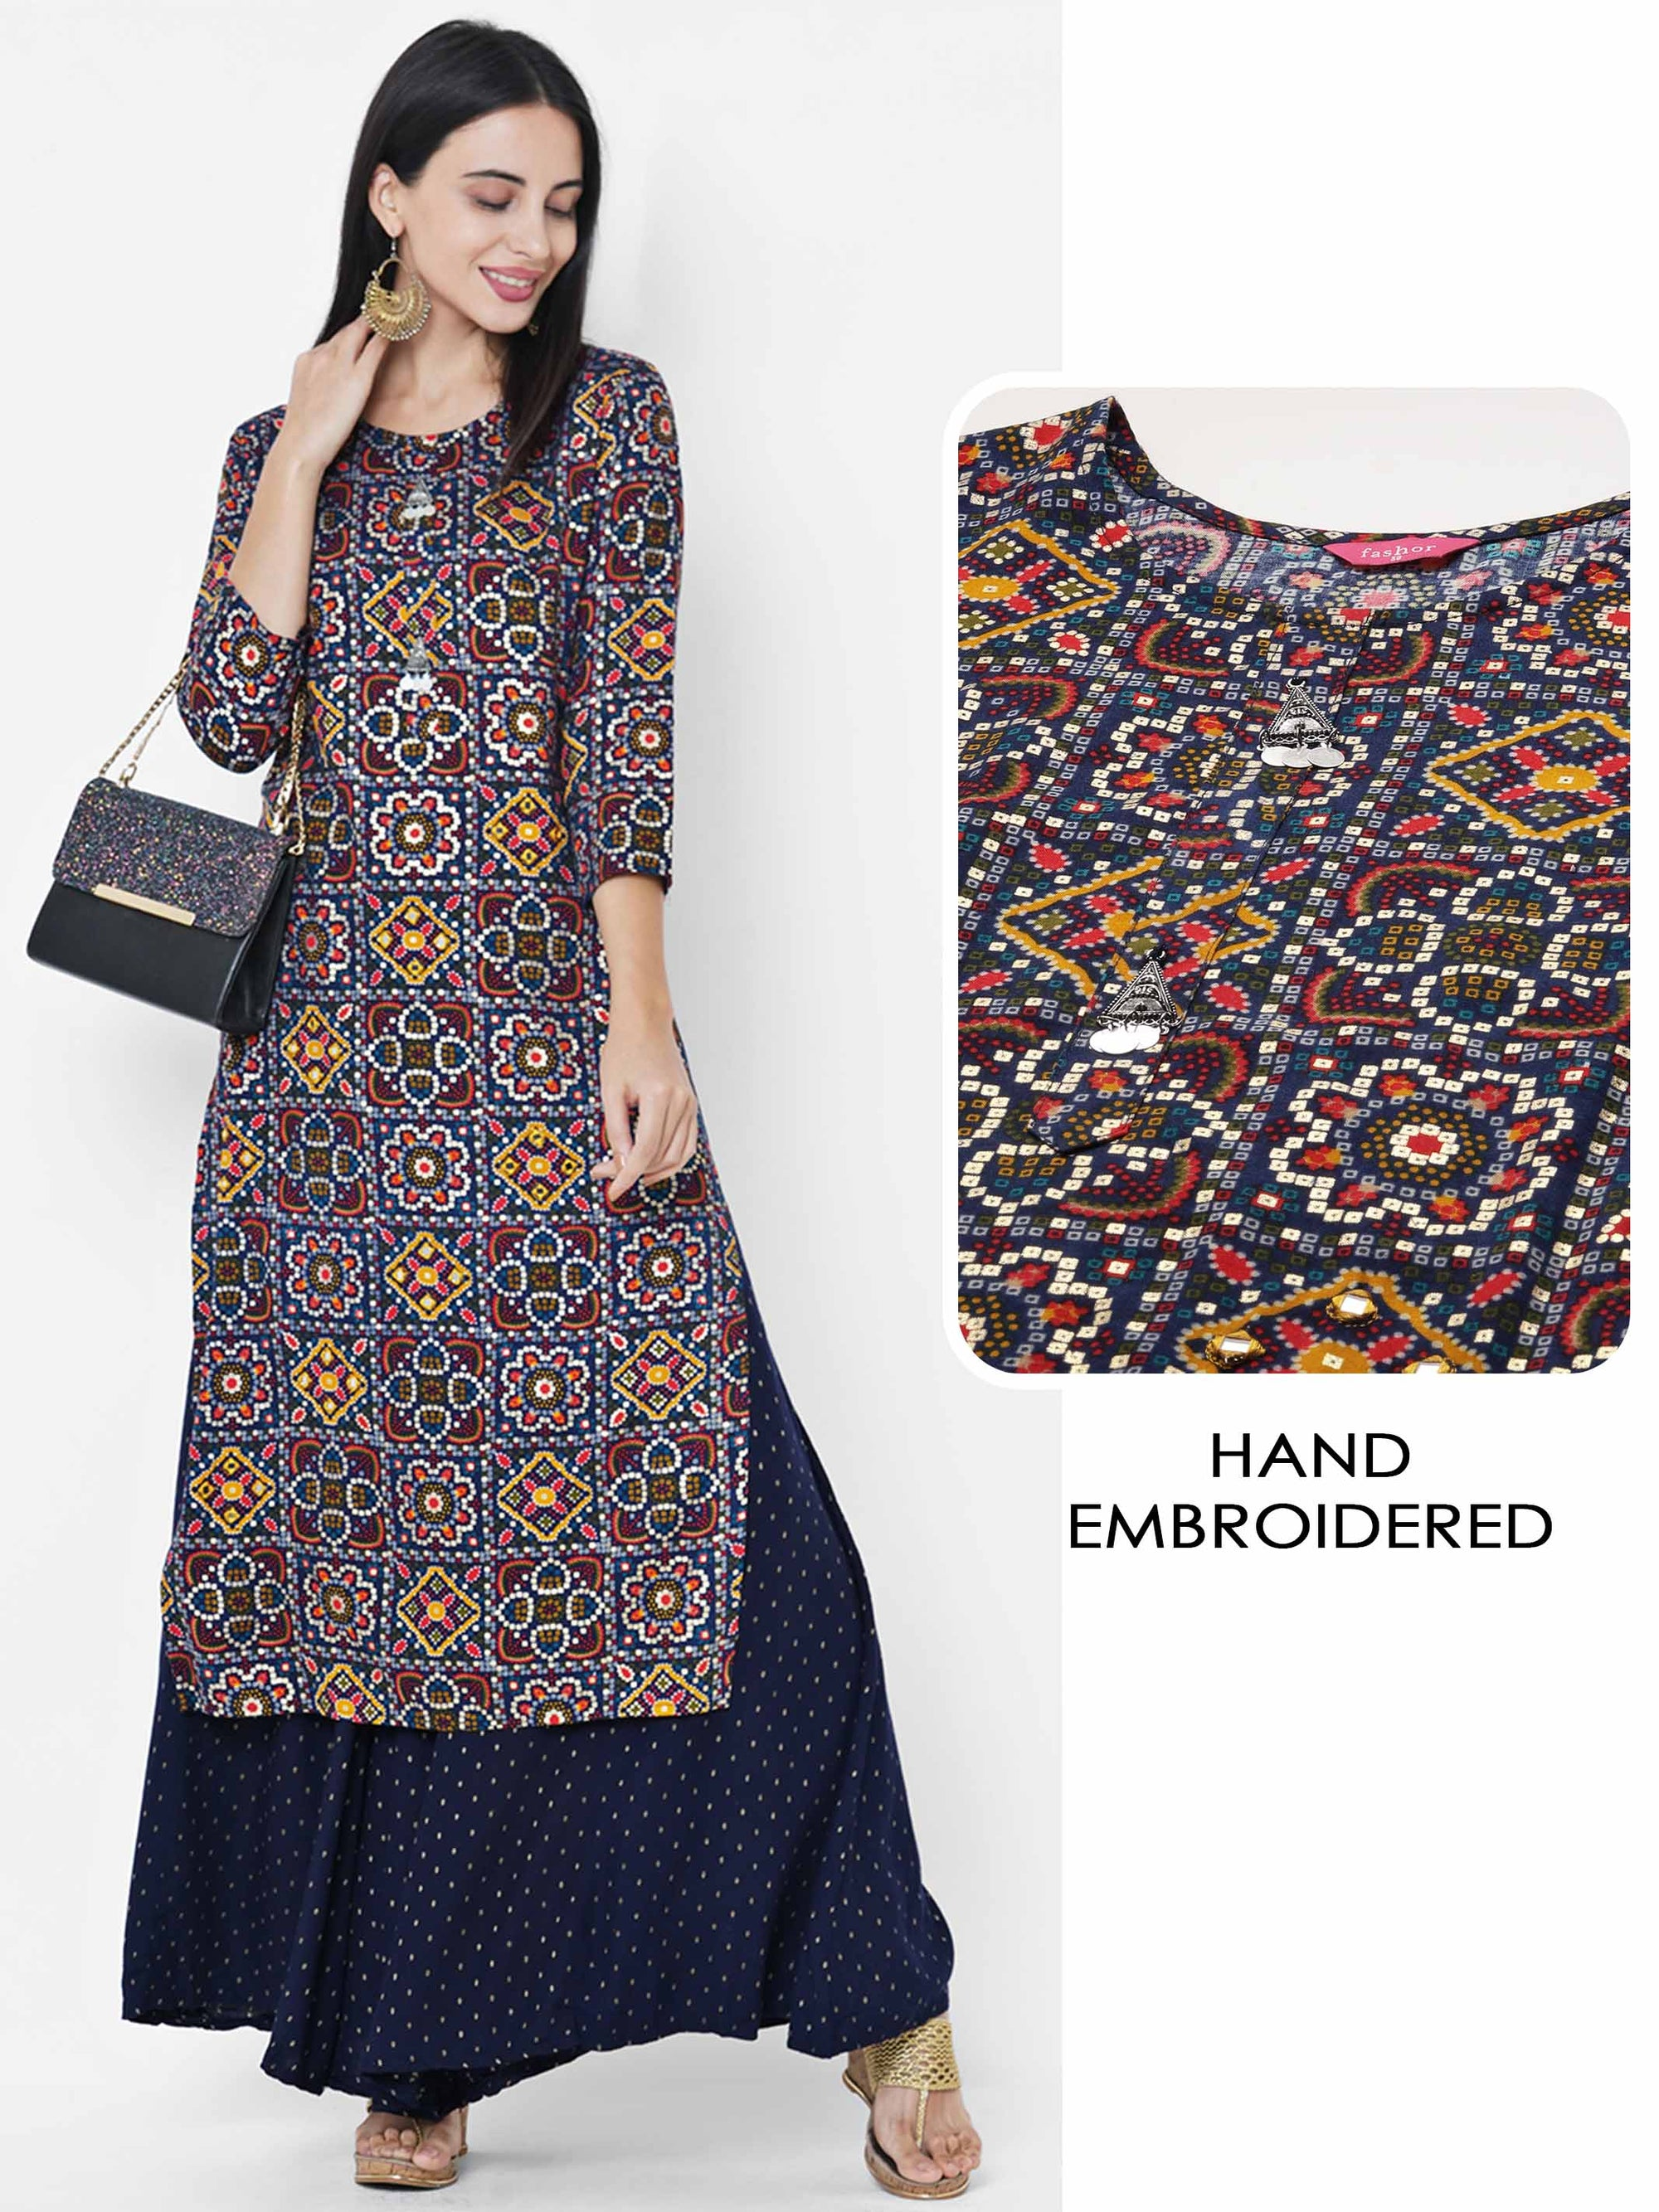 Dense Bandhani Printed & Hand Embroidered Kurta - Navy Blue